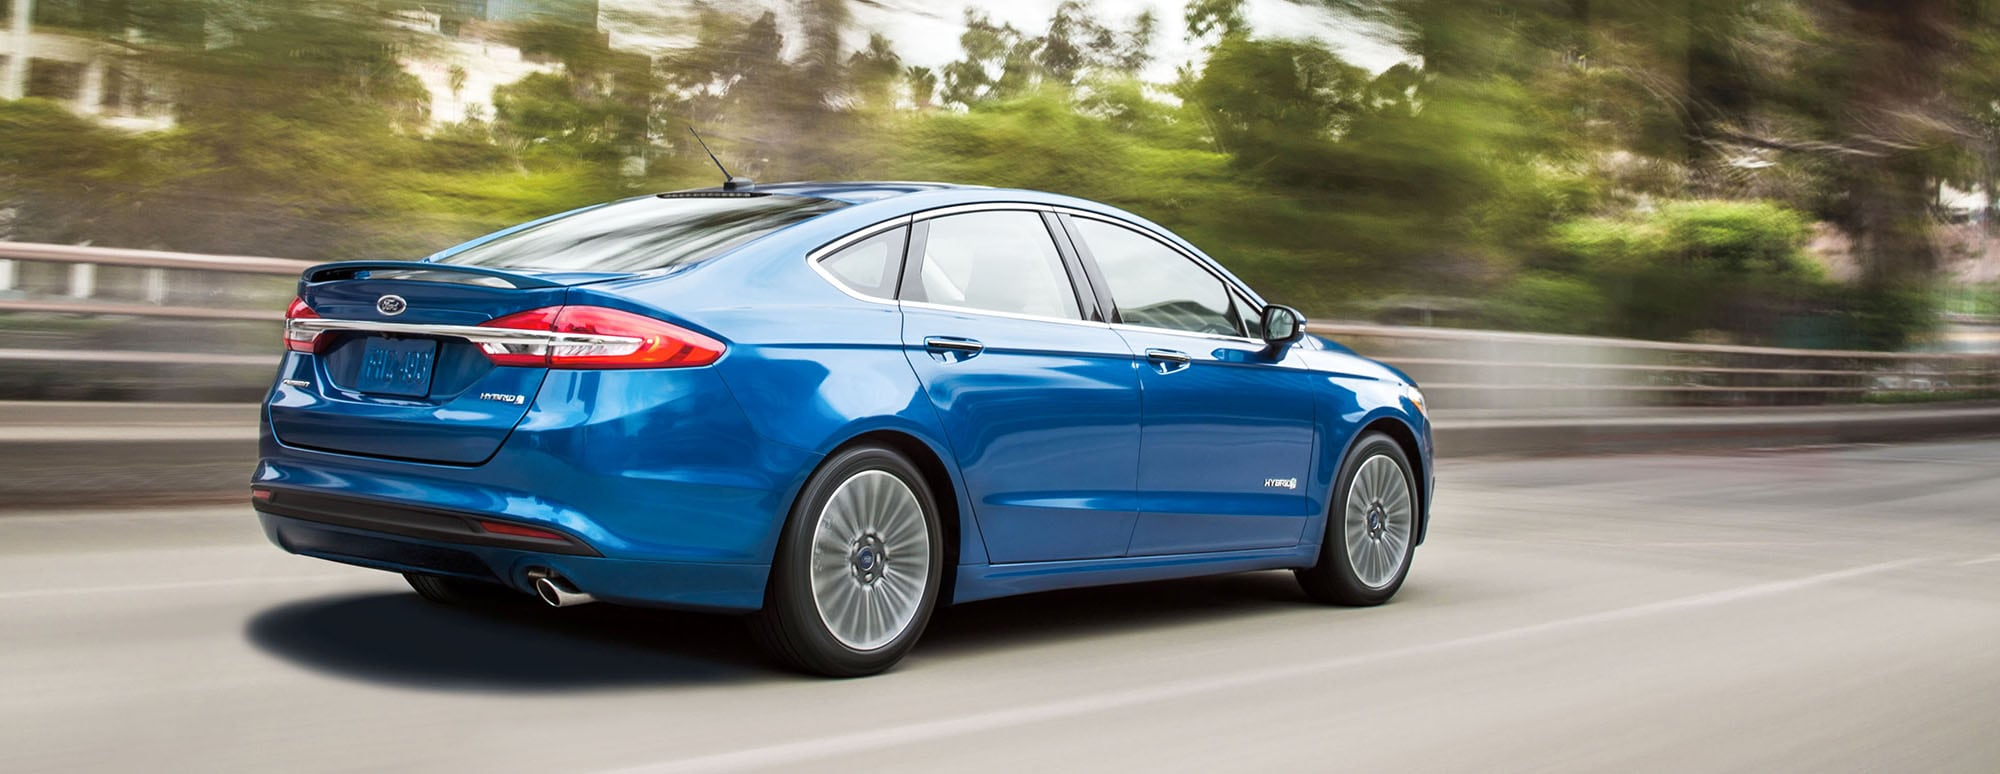 ford lease vs buy options near corpus christi autonation ford corpus. Cars Review. Best American Auto & Cars Review